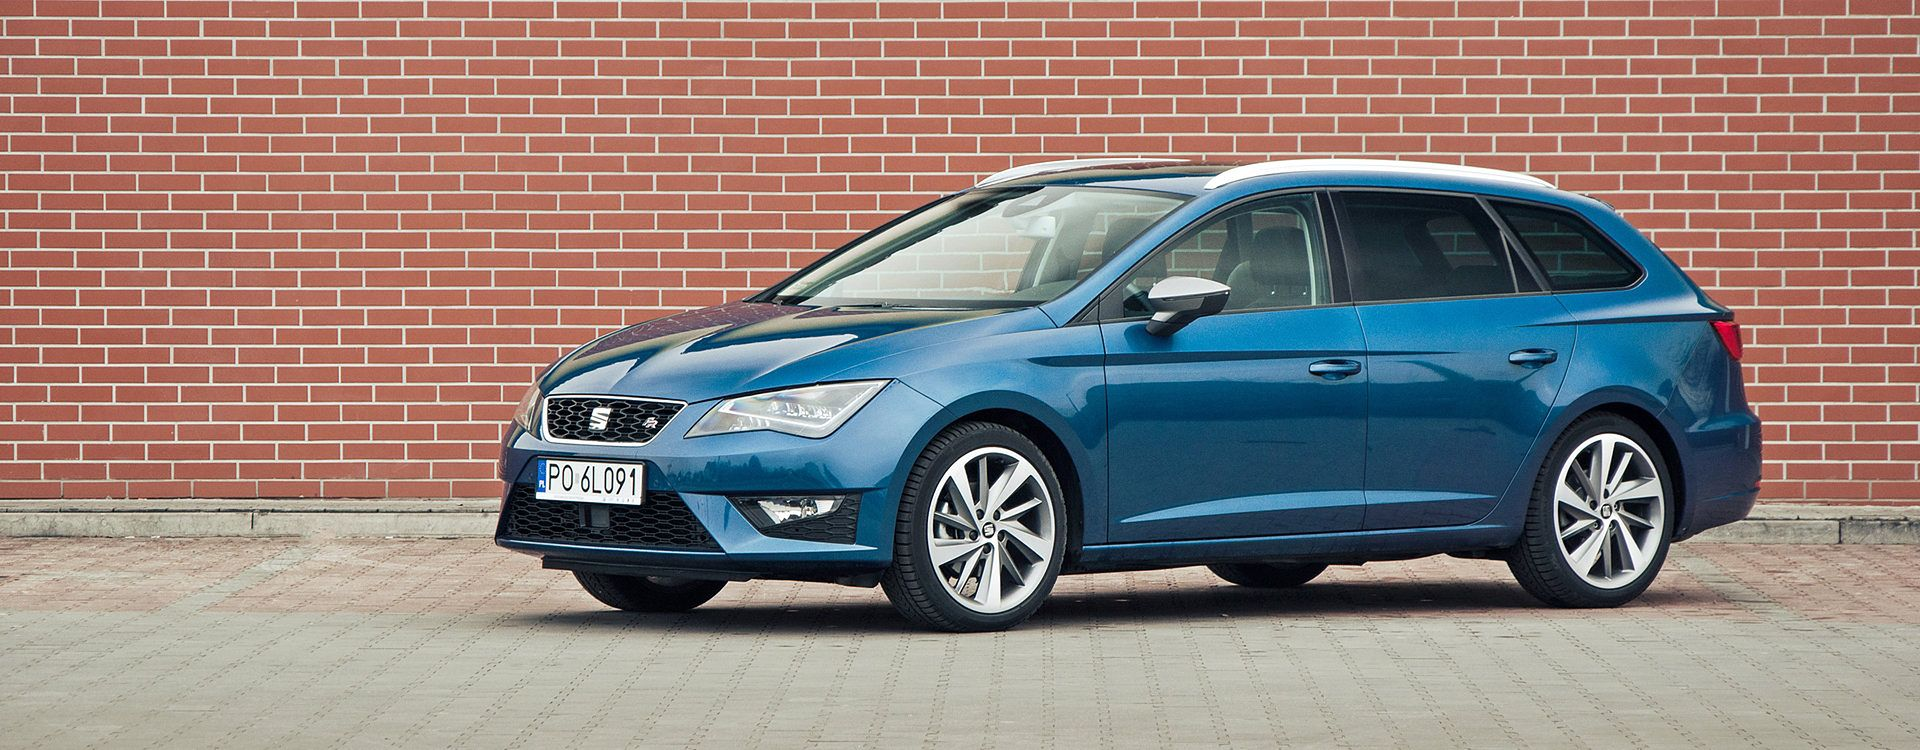 seat leon st 2 0 tdi fr 4drive najlepsza specyfikacja. Black Bedroom Furniture Sets. Home Design Ideas